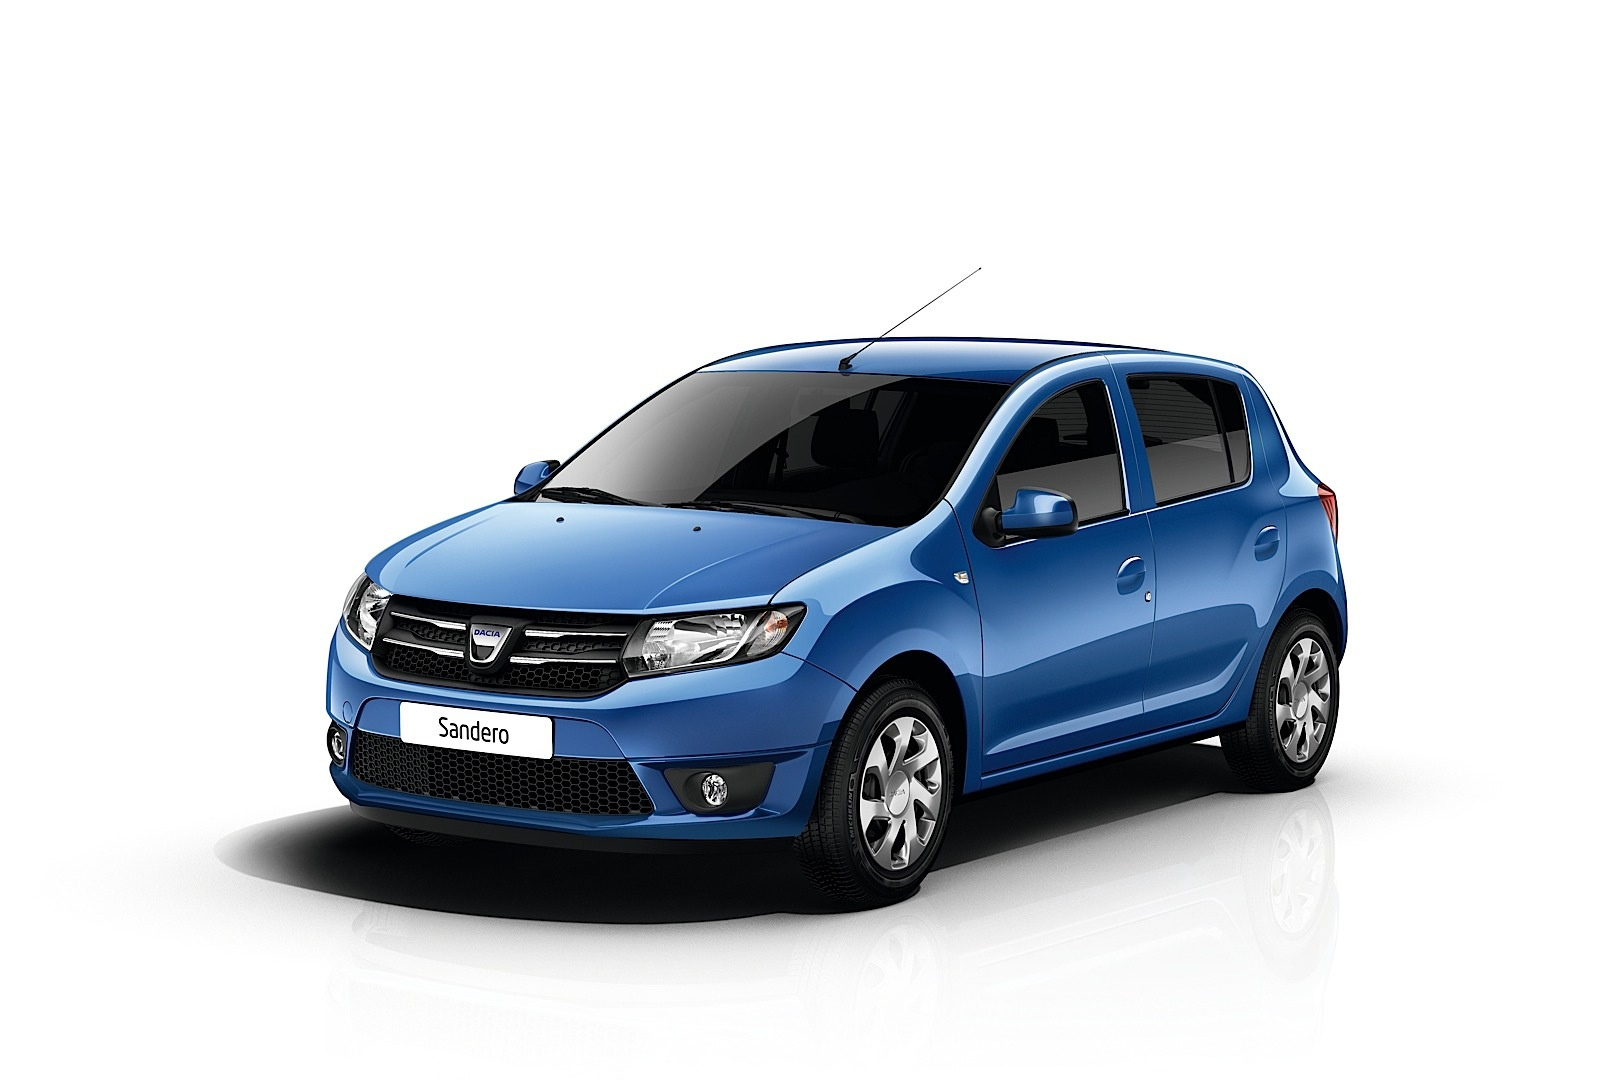 new dacia logan and sandero photos become official. Black Bedroom Furniture Sets. Home Design Ideas